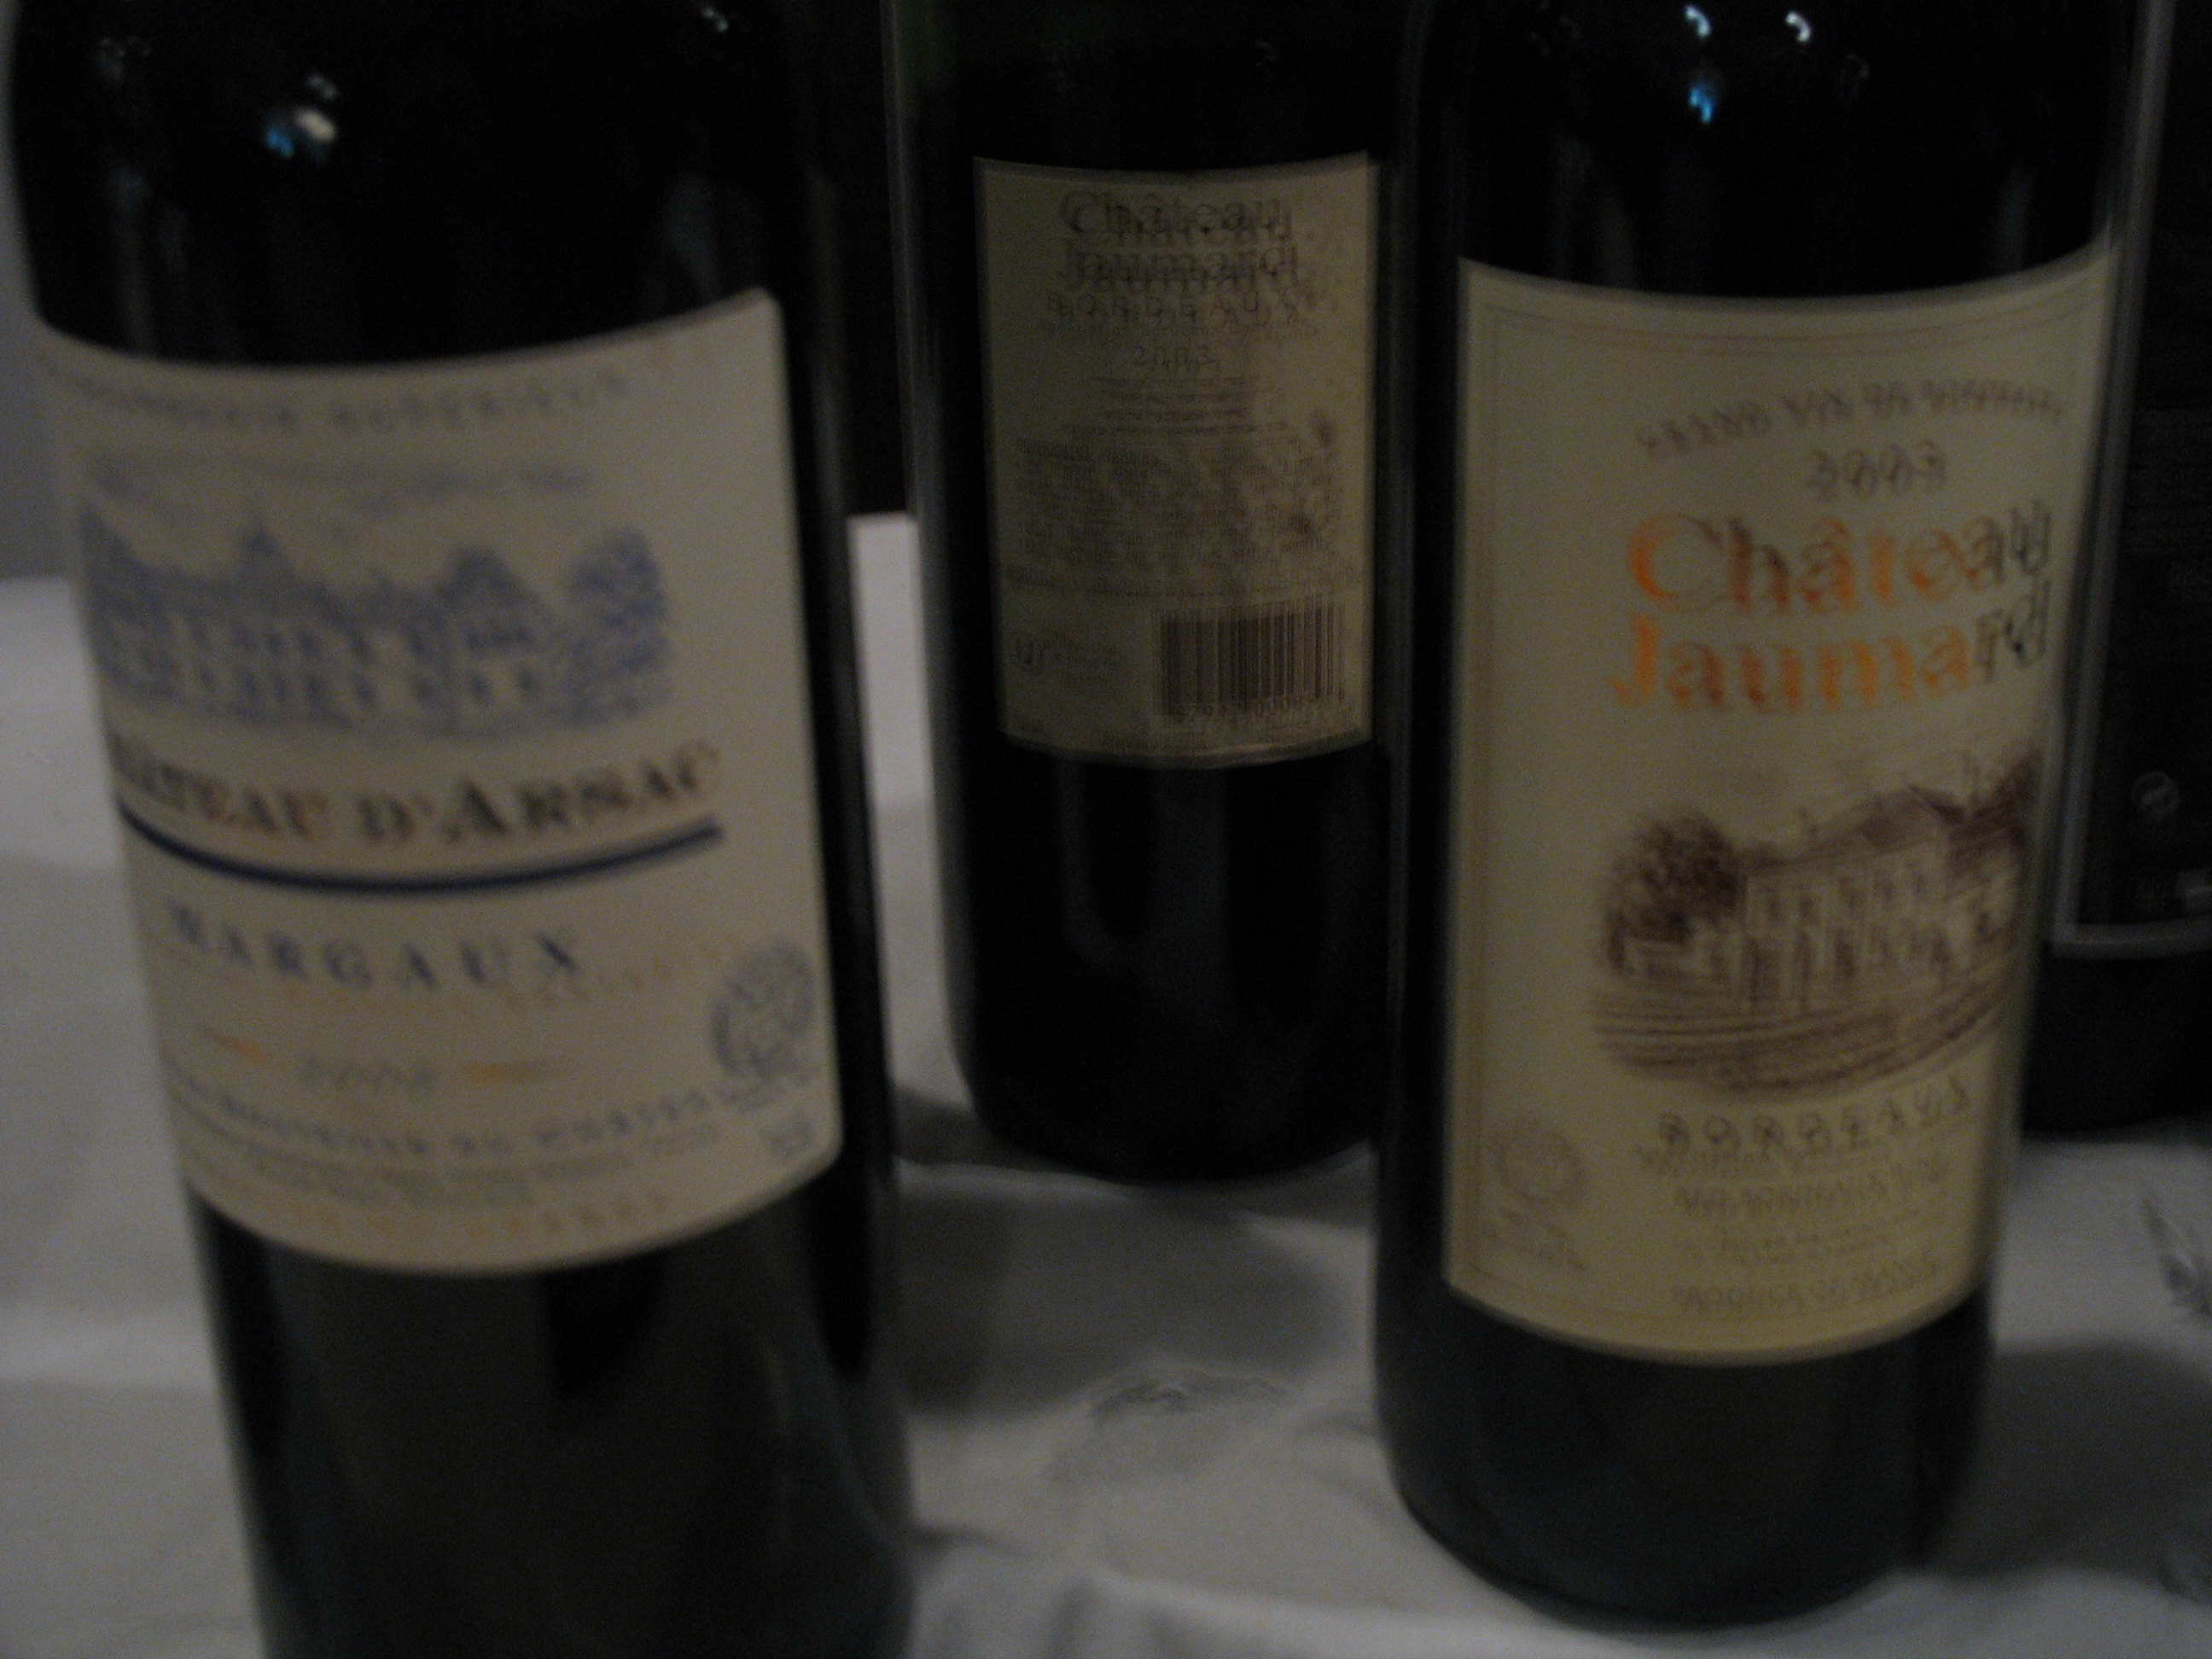 French Mevushal Wines